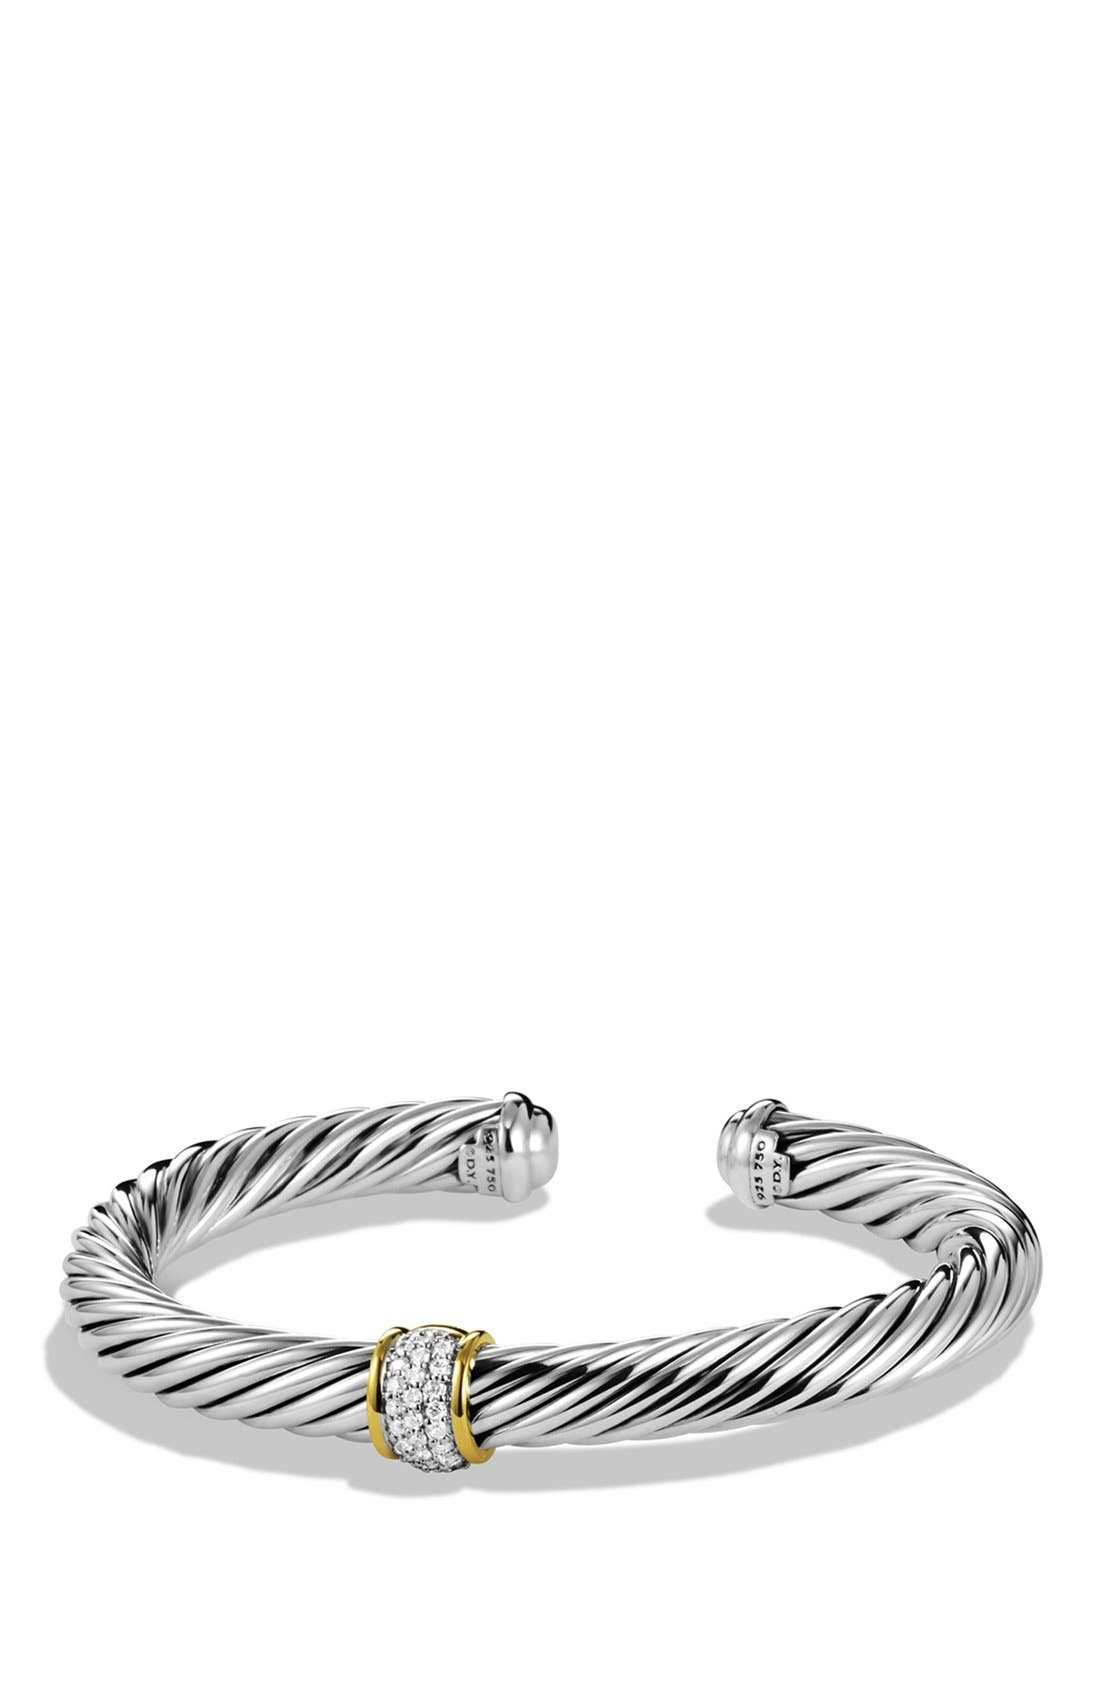 Cable Classics Bracelet with Diamonds & 18K Gold, 7mm,                             Main thumbnail 1, color,                             DIAMOND